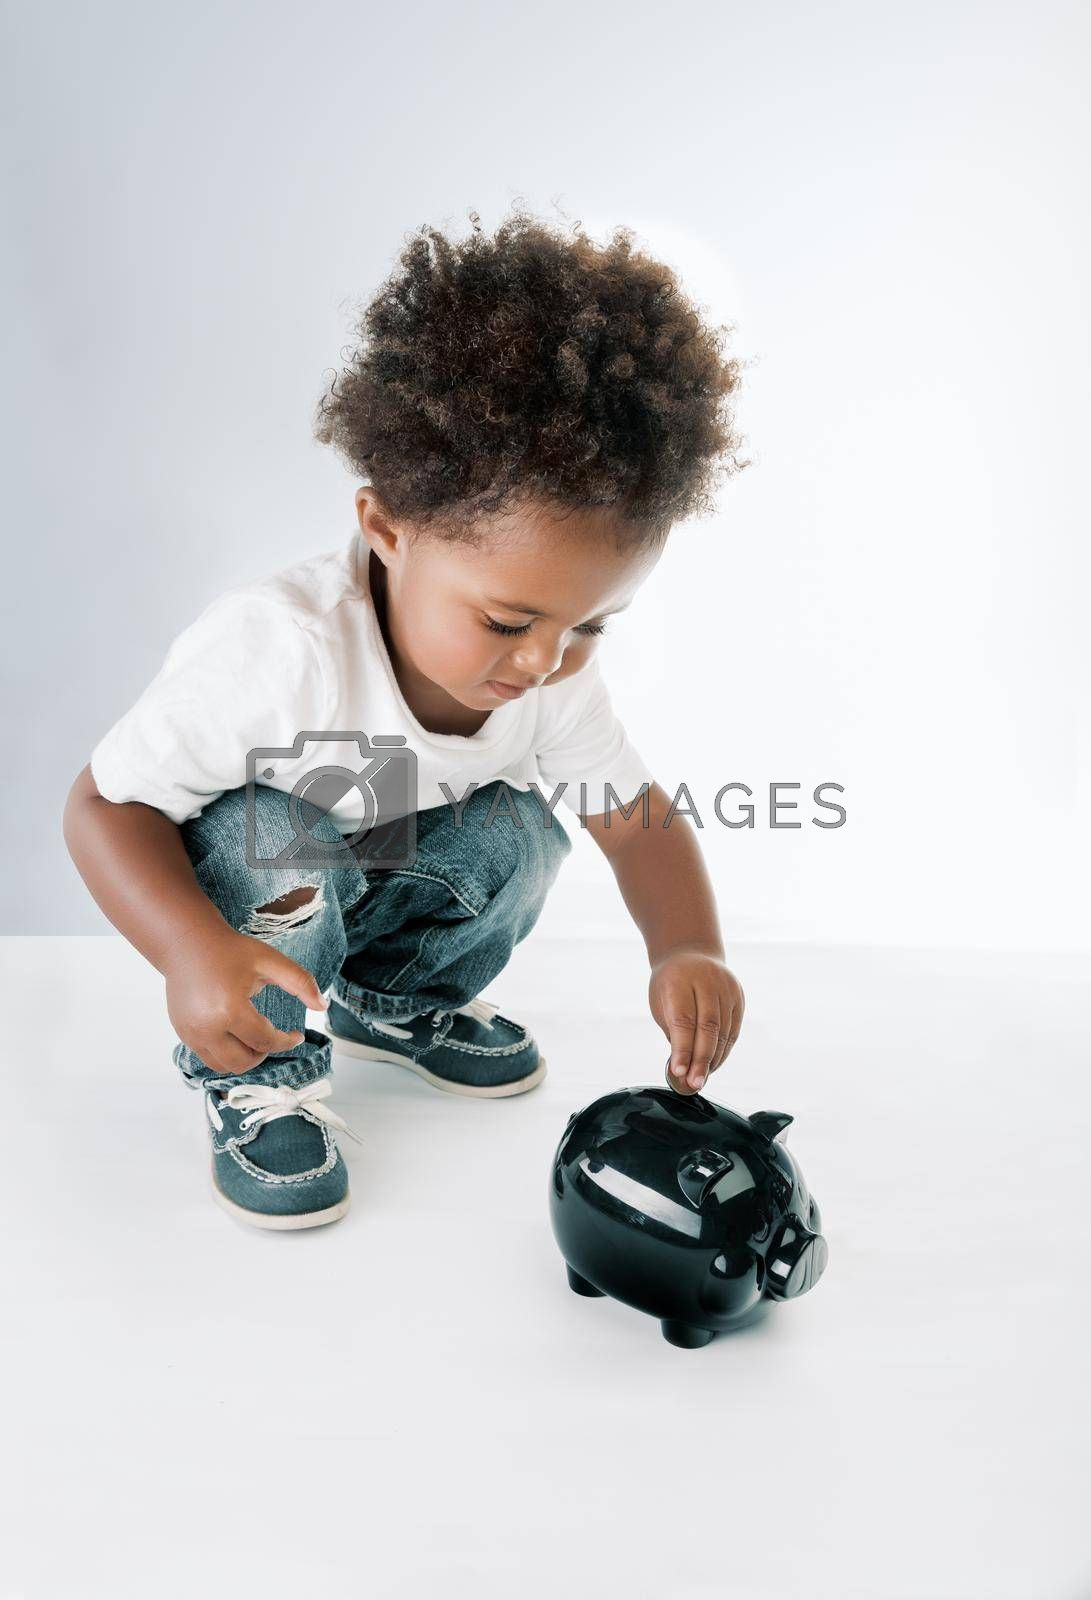 Portrait of a Nice African American Child Putting Coins in to the Pig-shaped Money Box. Isolated on Grey White Background. Hope for Better Future